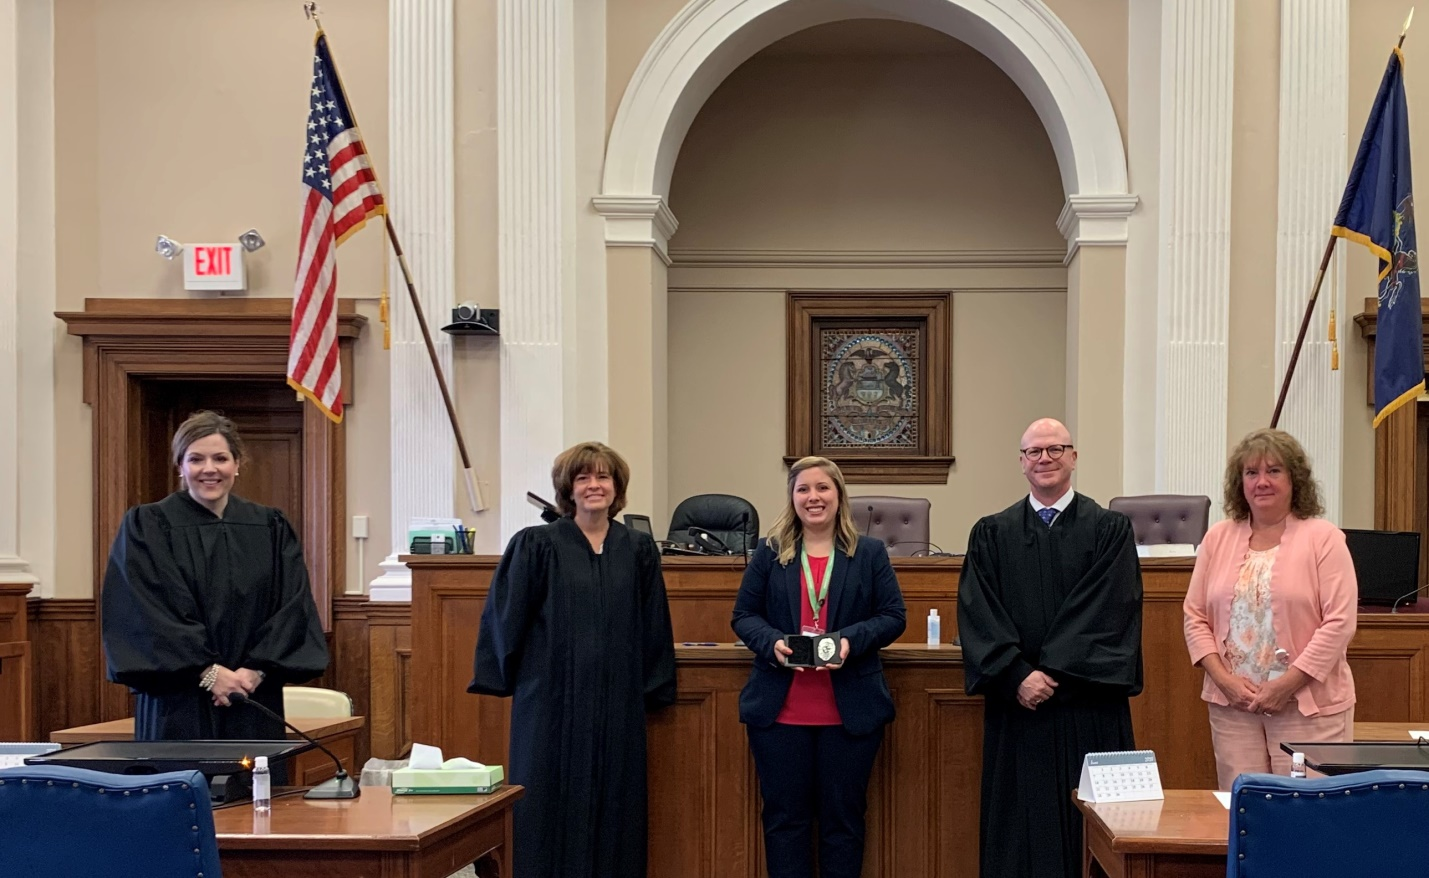 left to right: The Honorable Mary Beth Shank, The Honorable Angela R. Krom, Probation Officer Harley Payne,  President Judge Shawn D. Meyers, Kathleen A. McGrath, Chief Juvenile Probation Officer